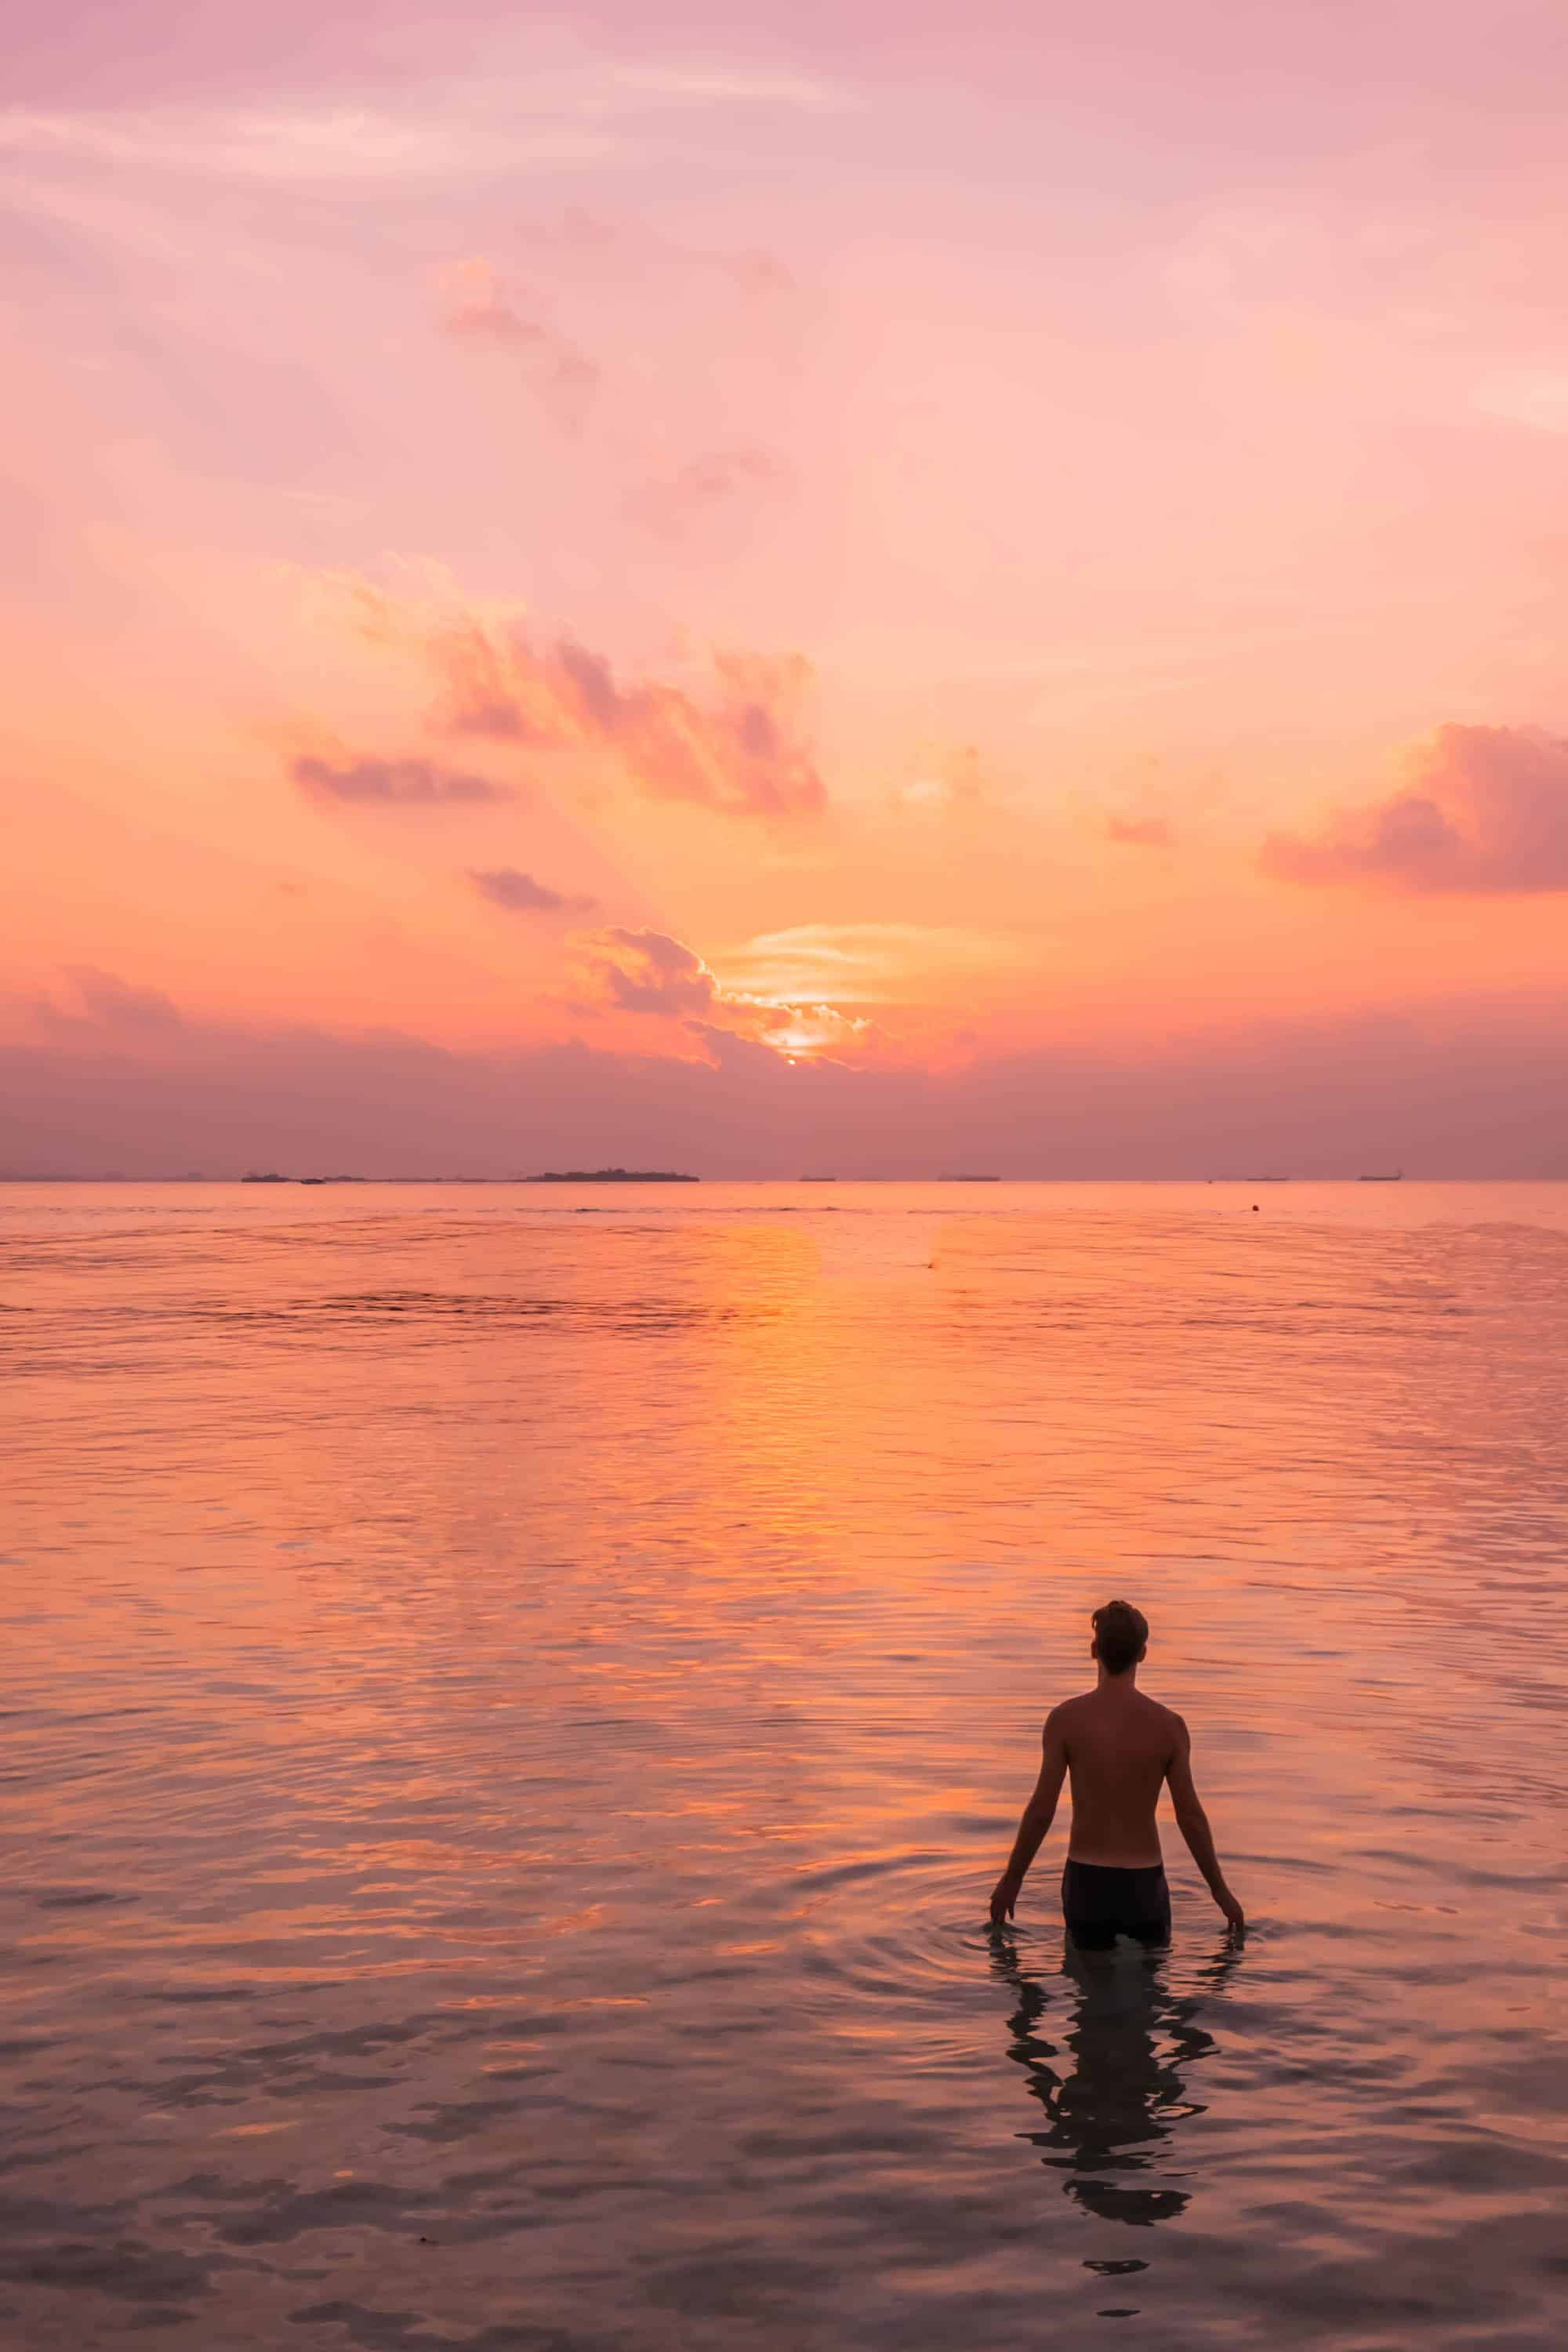 Sunsets in Maldives